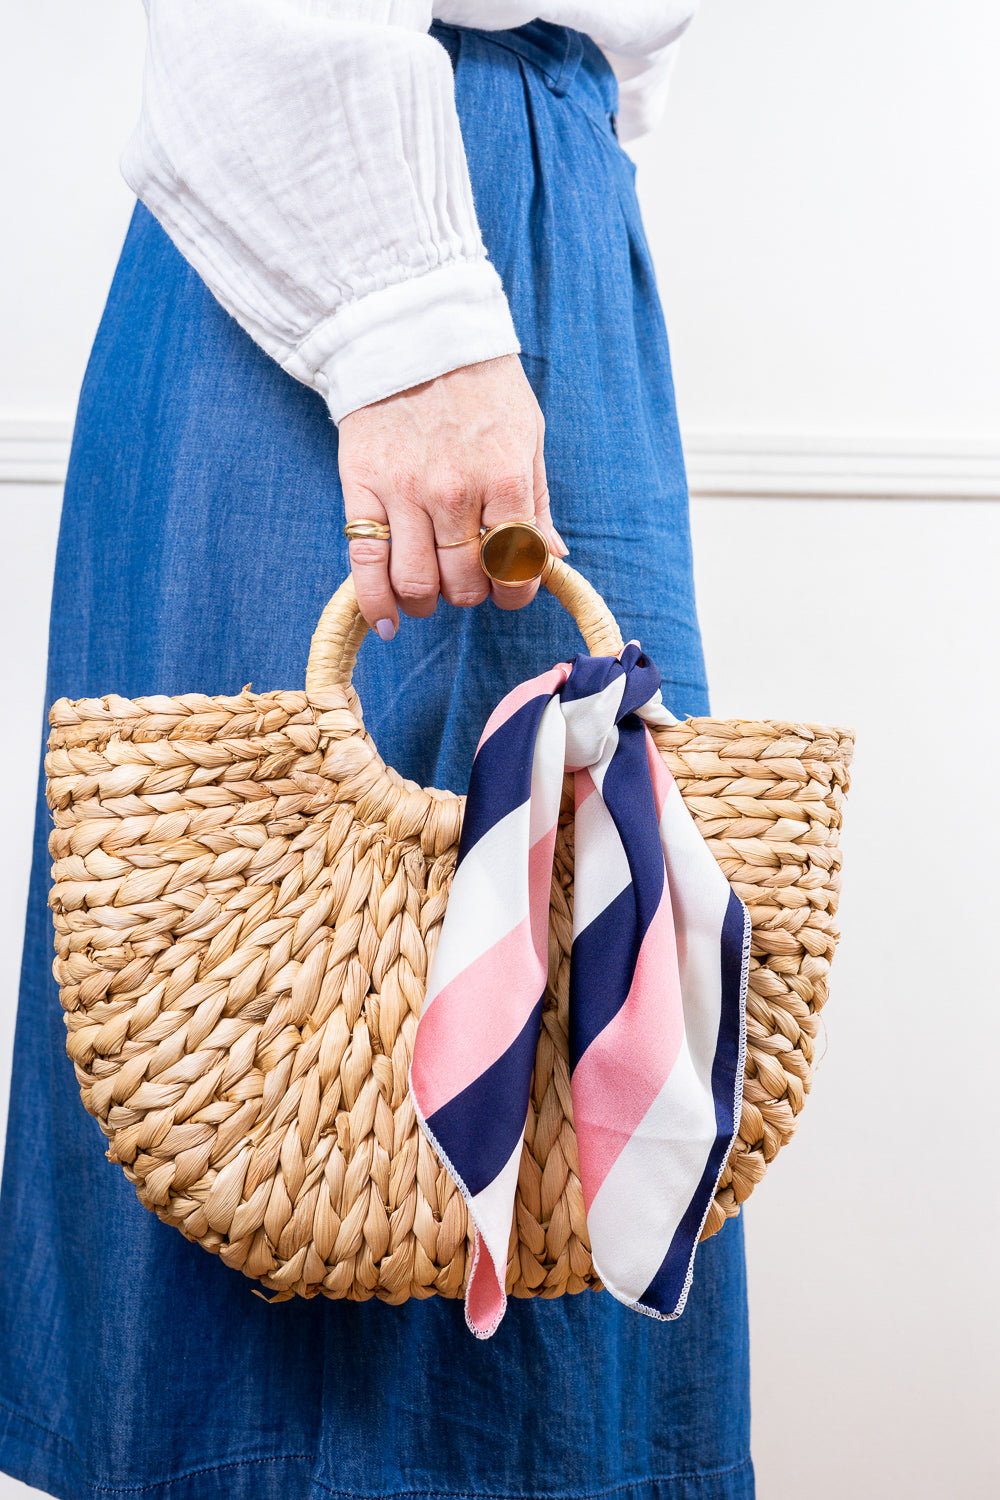 profile holding straw handbag with navy pink white striped scarf tied on held in hand janna conner